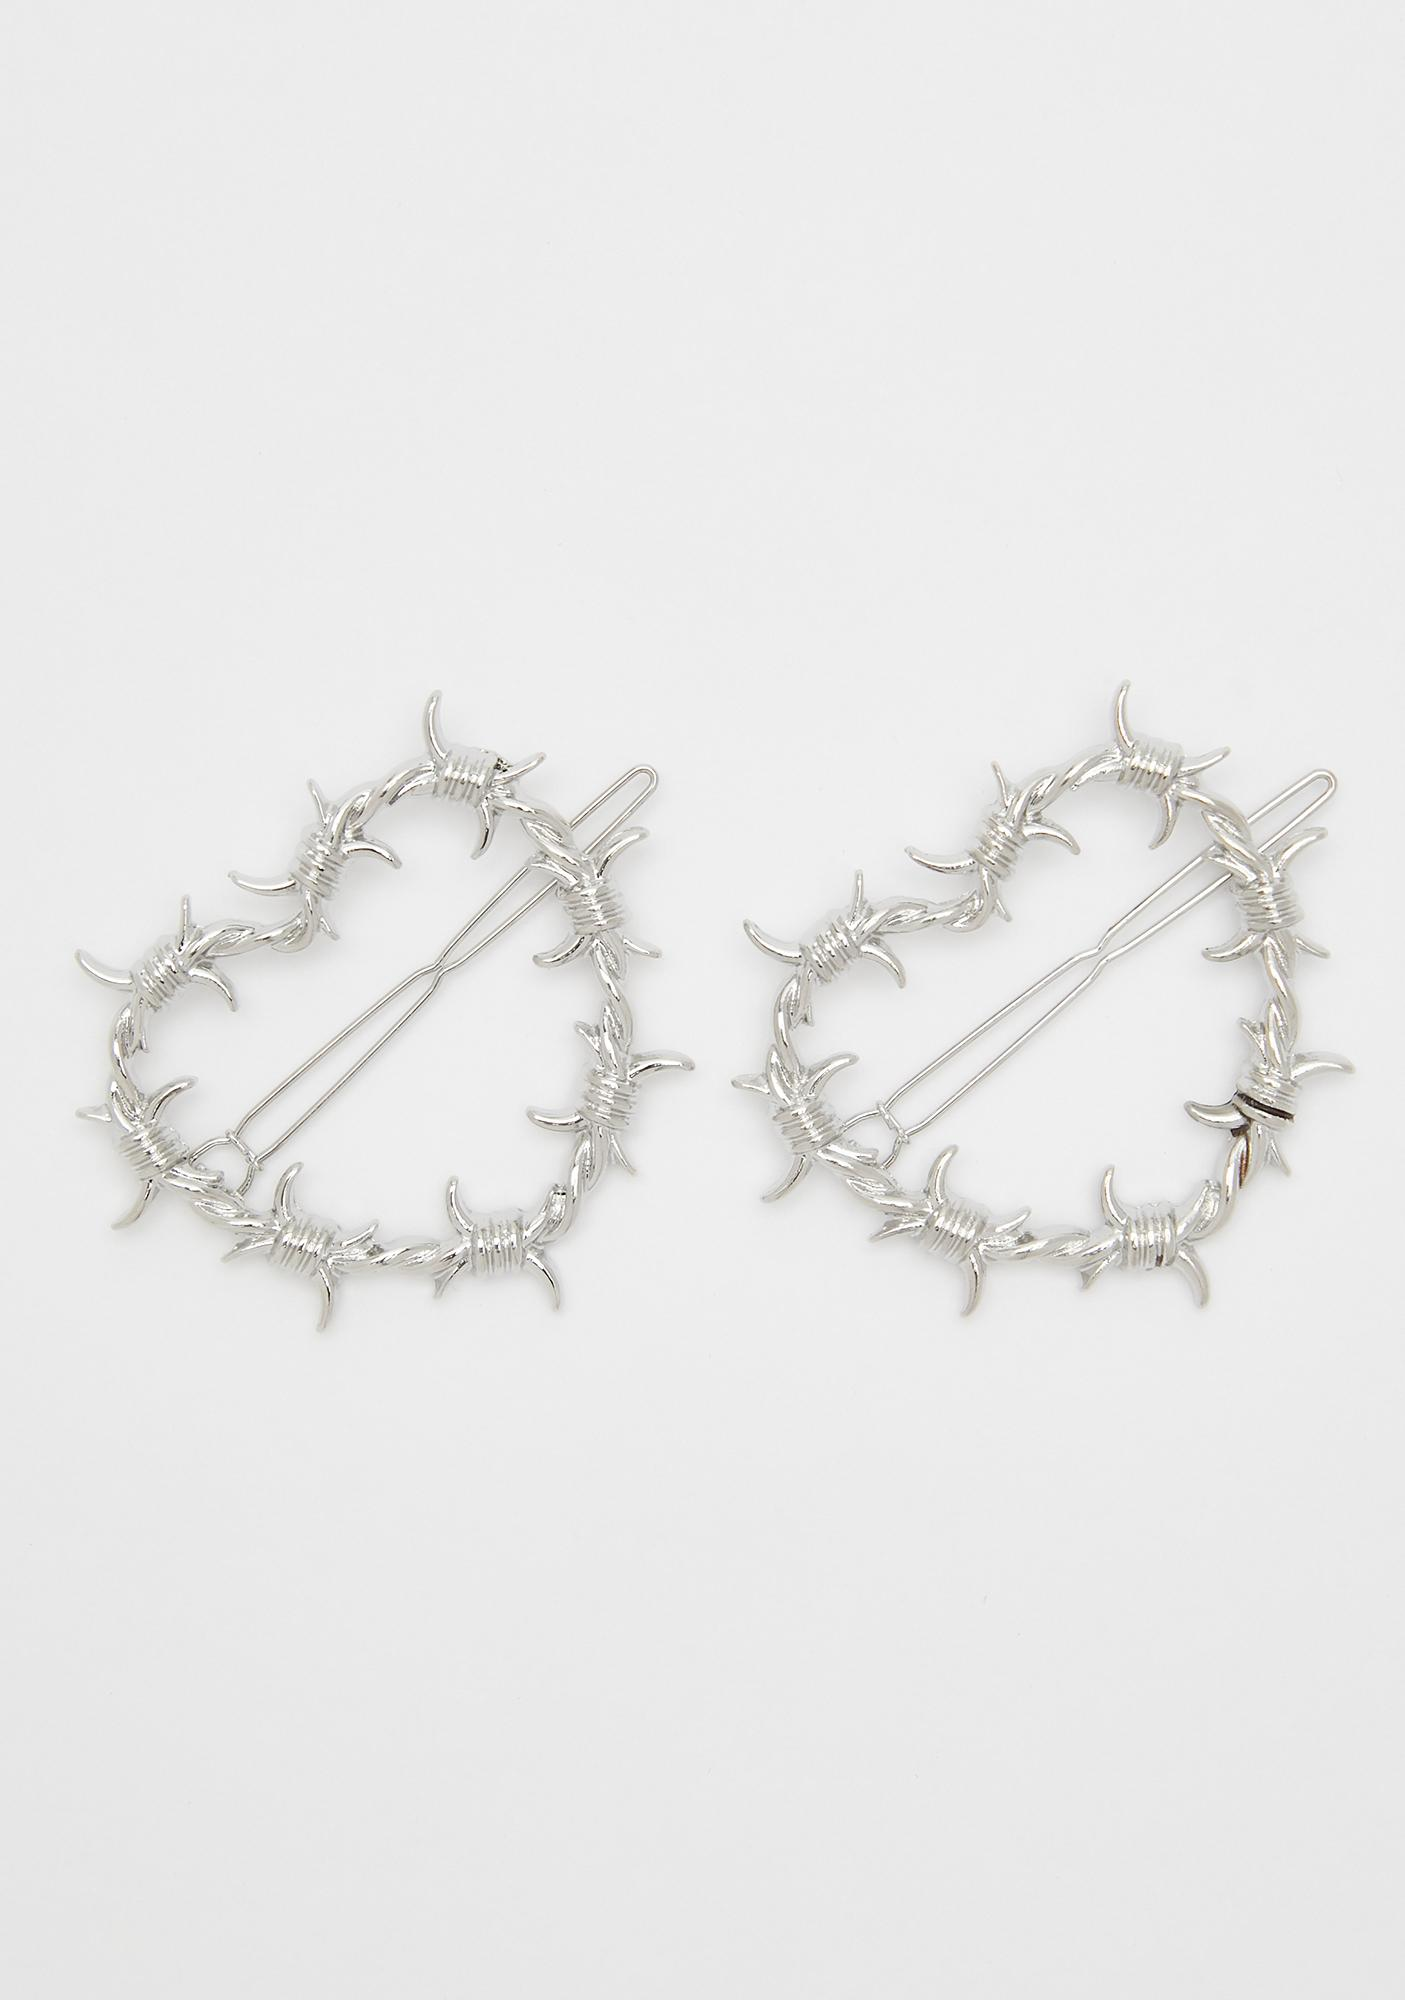 Steel Your Heart Hair Clips